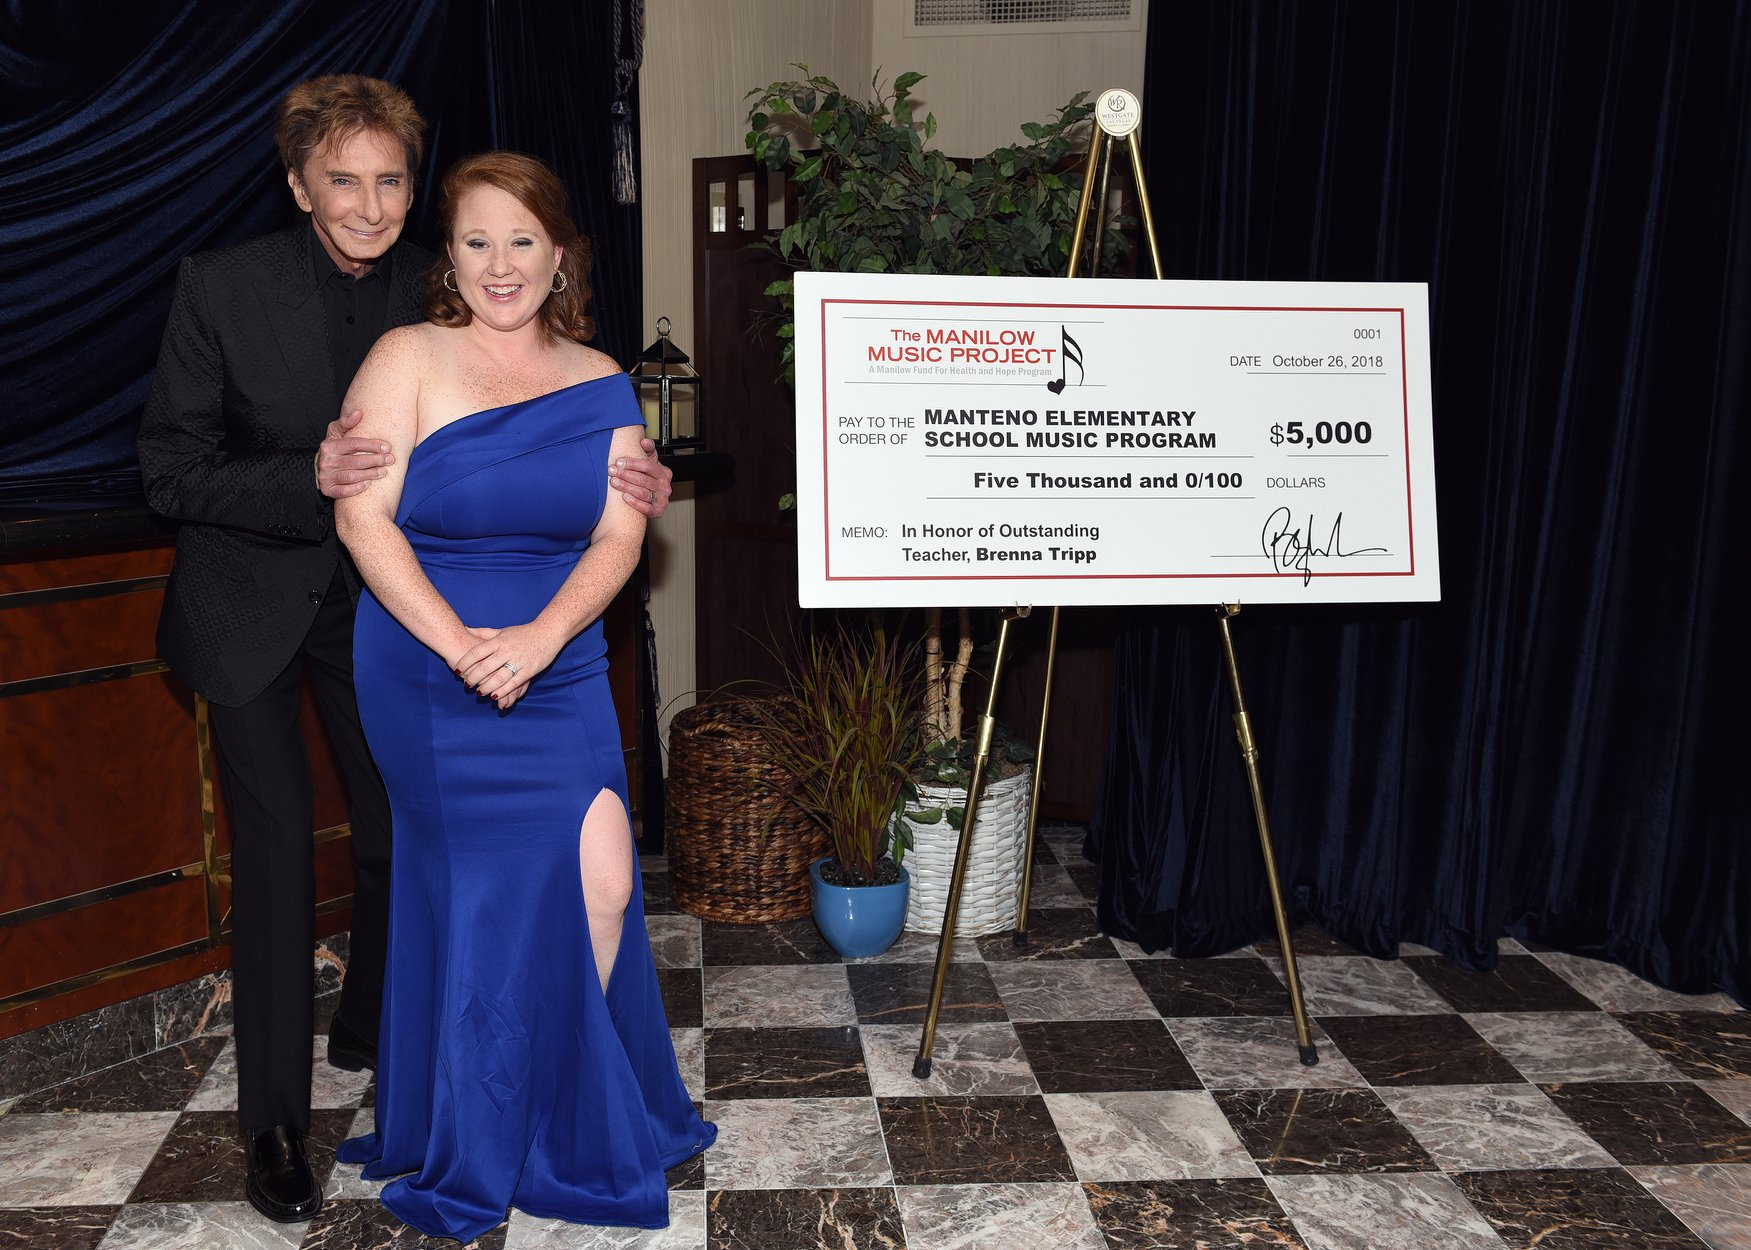 Brenna Tripp of Manteno Elementary School receives $5000 from Barry Manilow and the Manilow Music Project for Manteno's music program